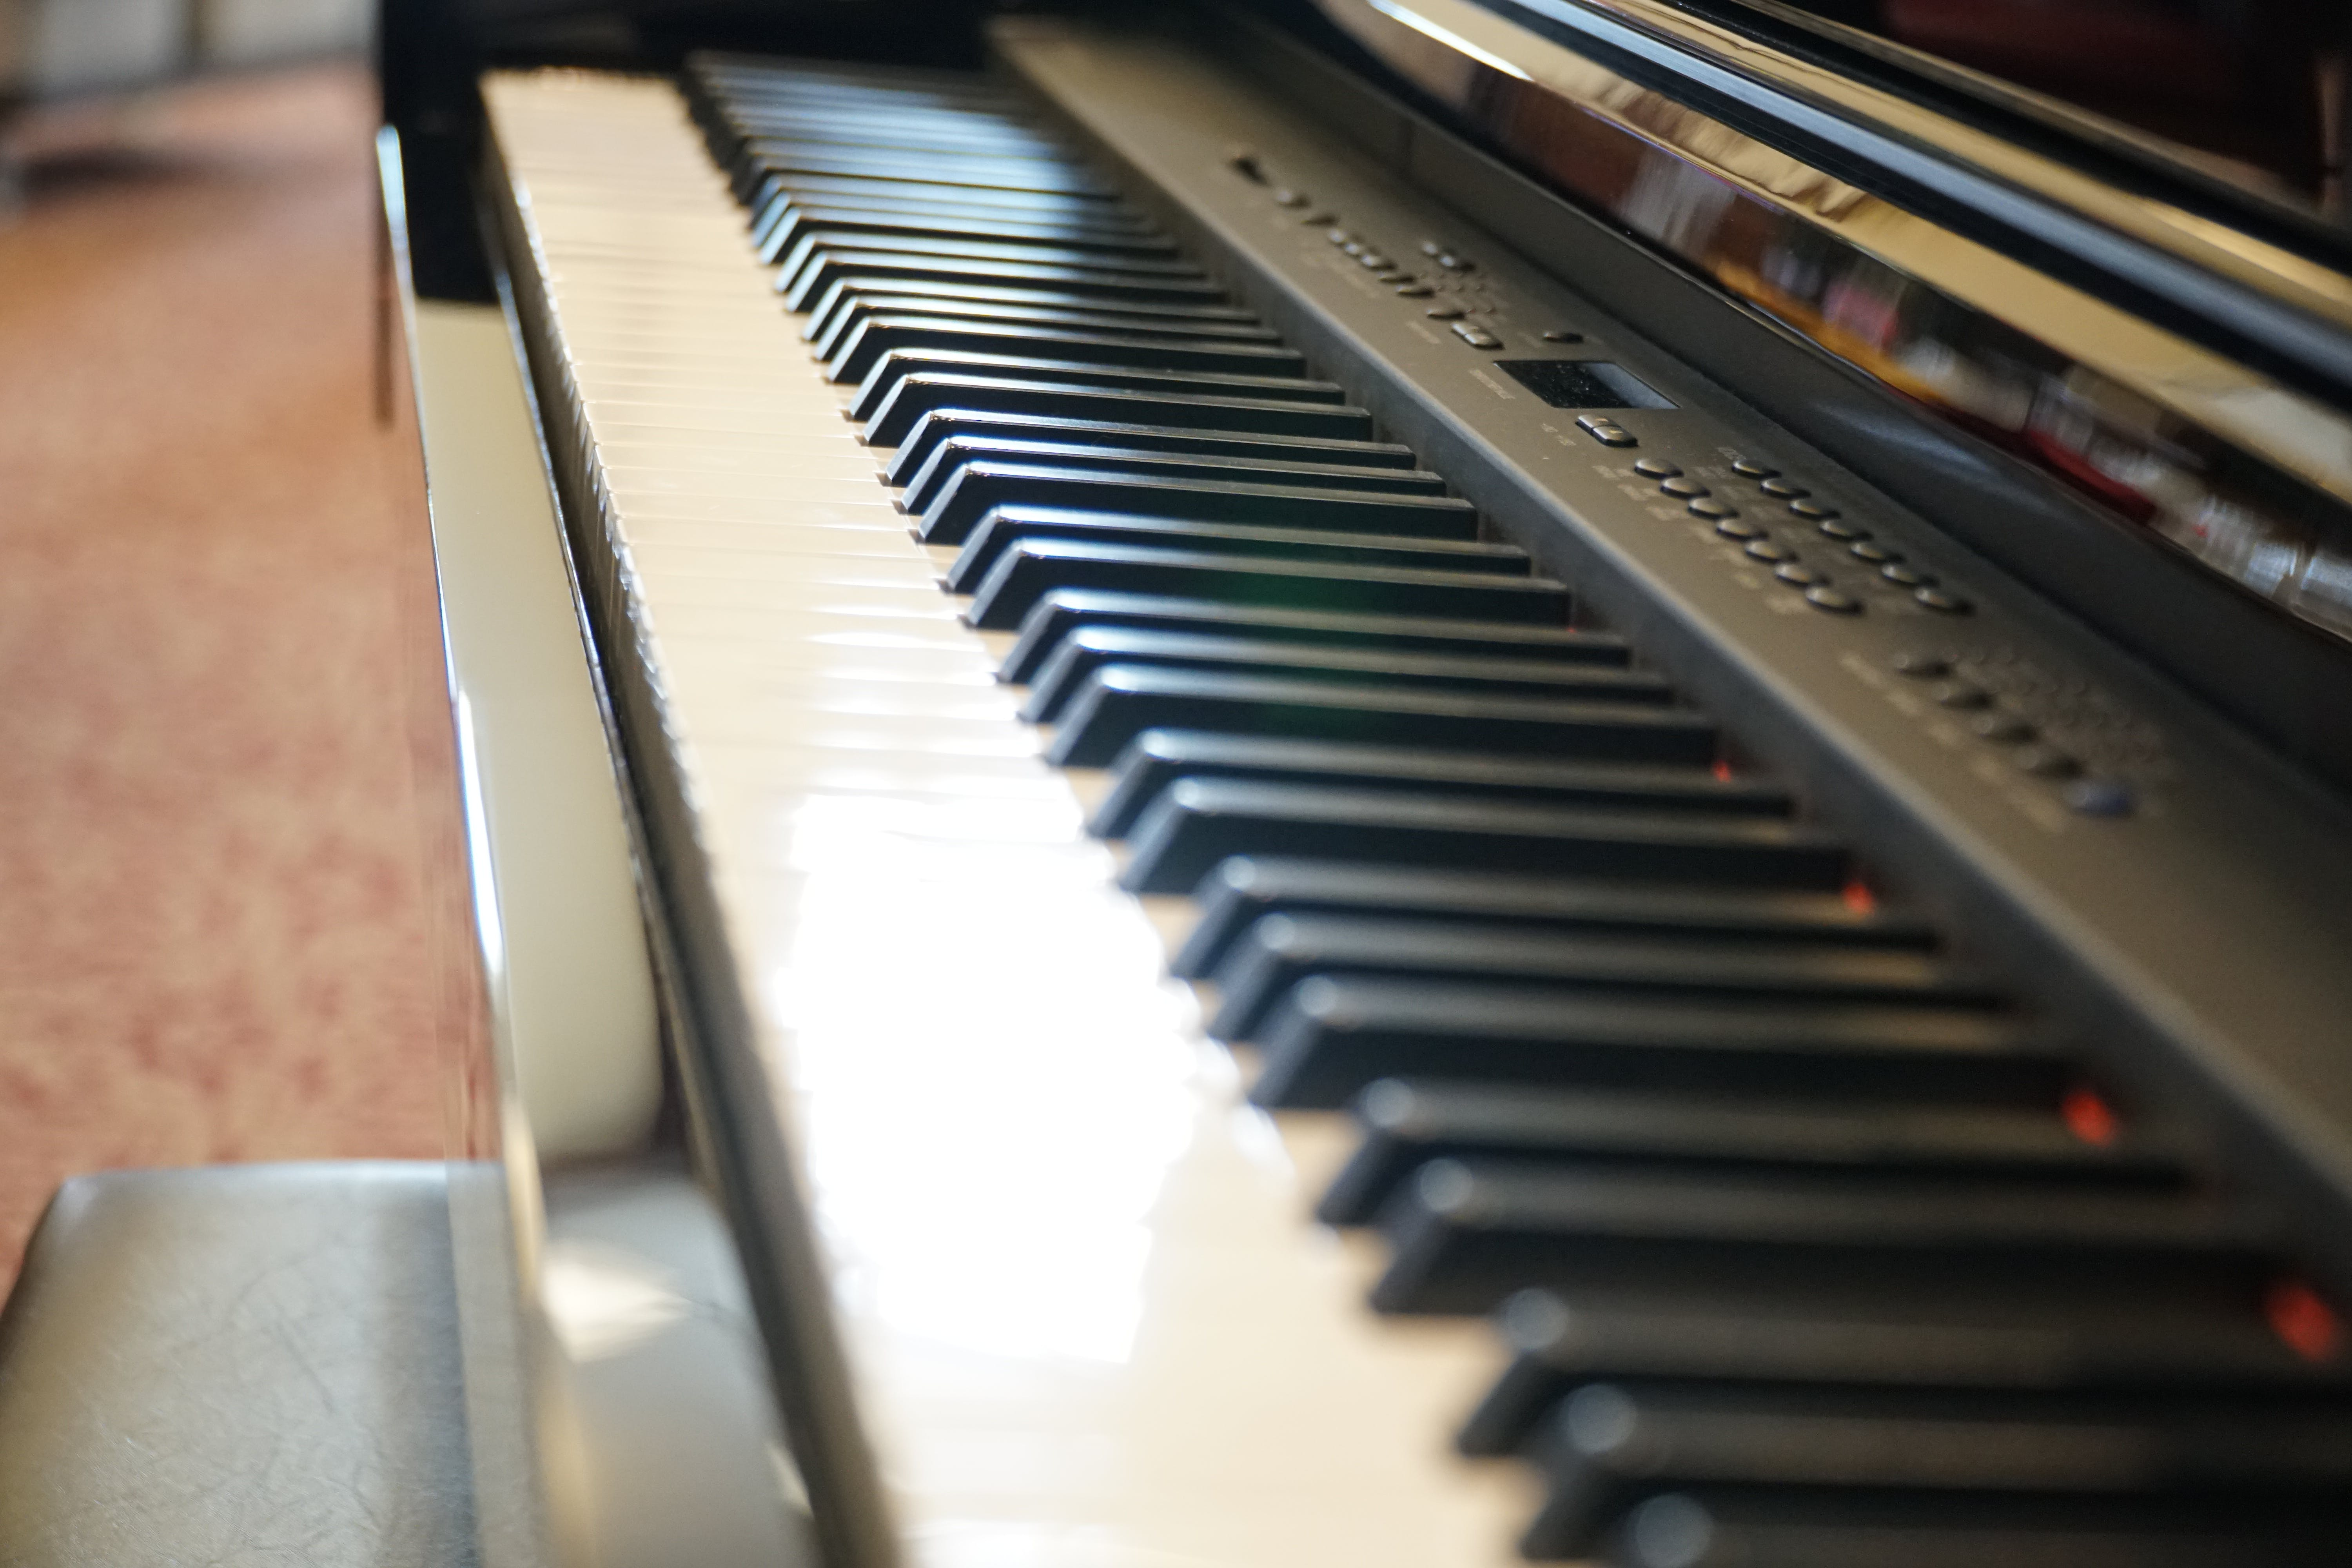 Free stock photo of piano, keyboard, keys, piano keys